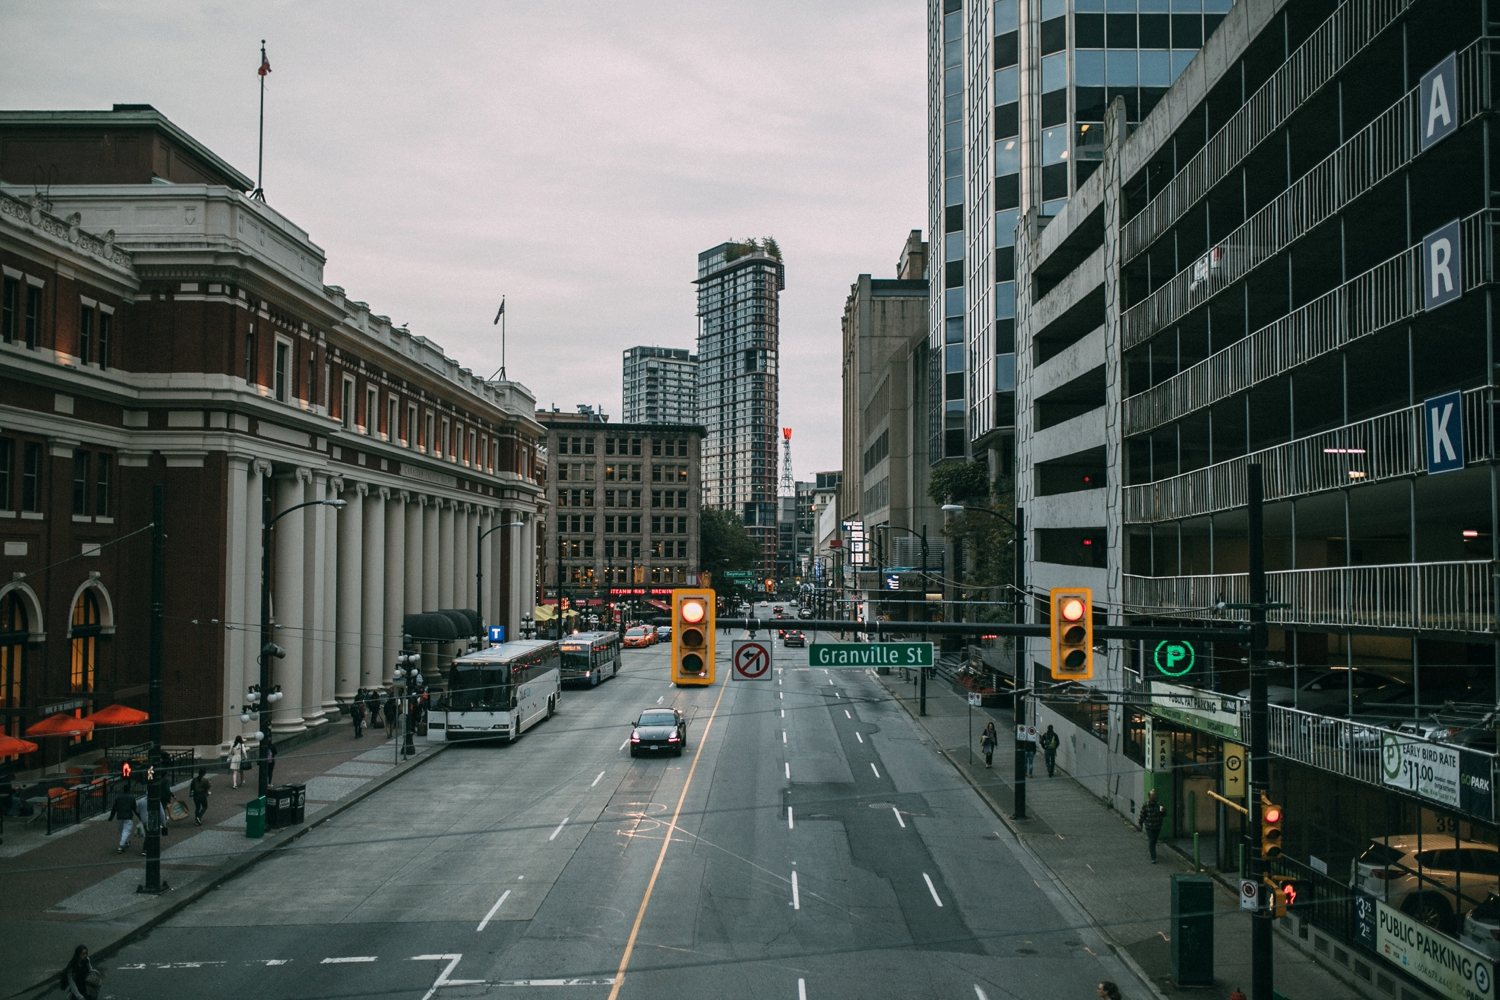 City scenes of Vancouver as light come on